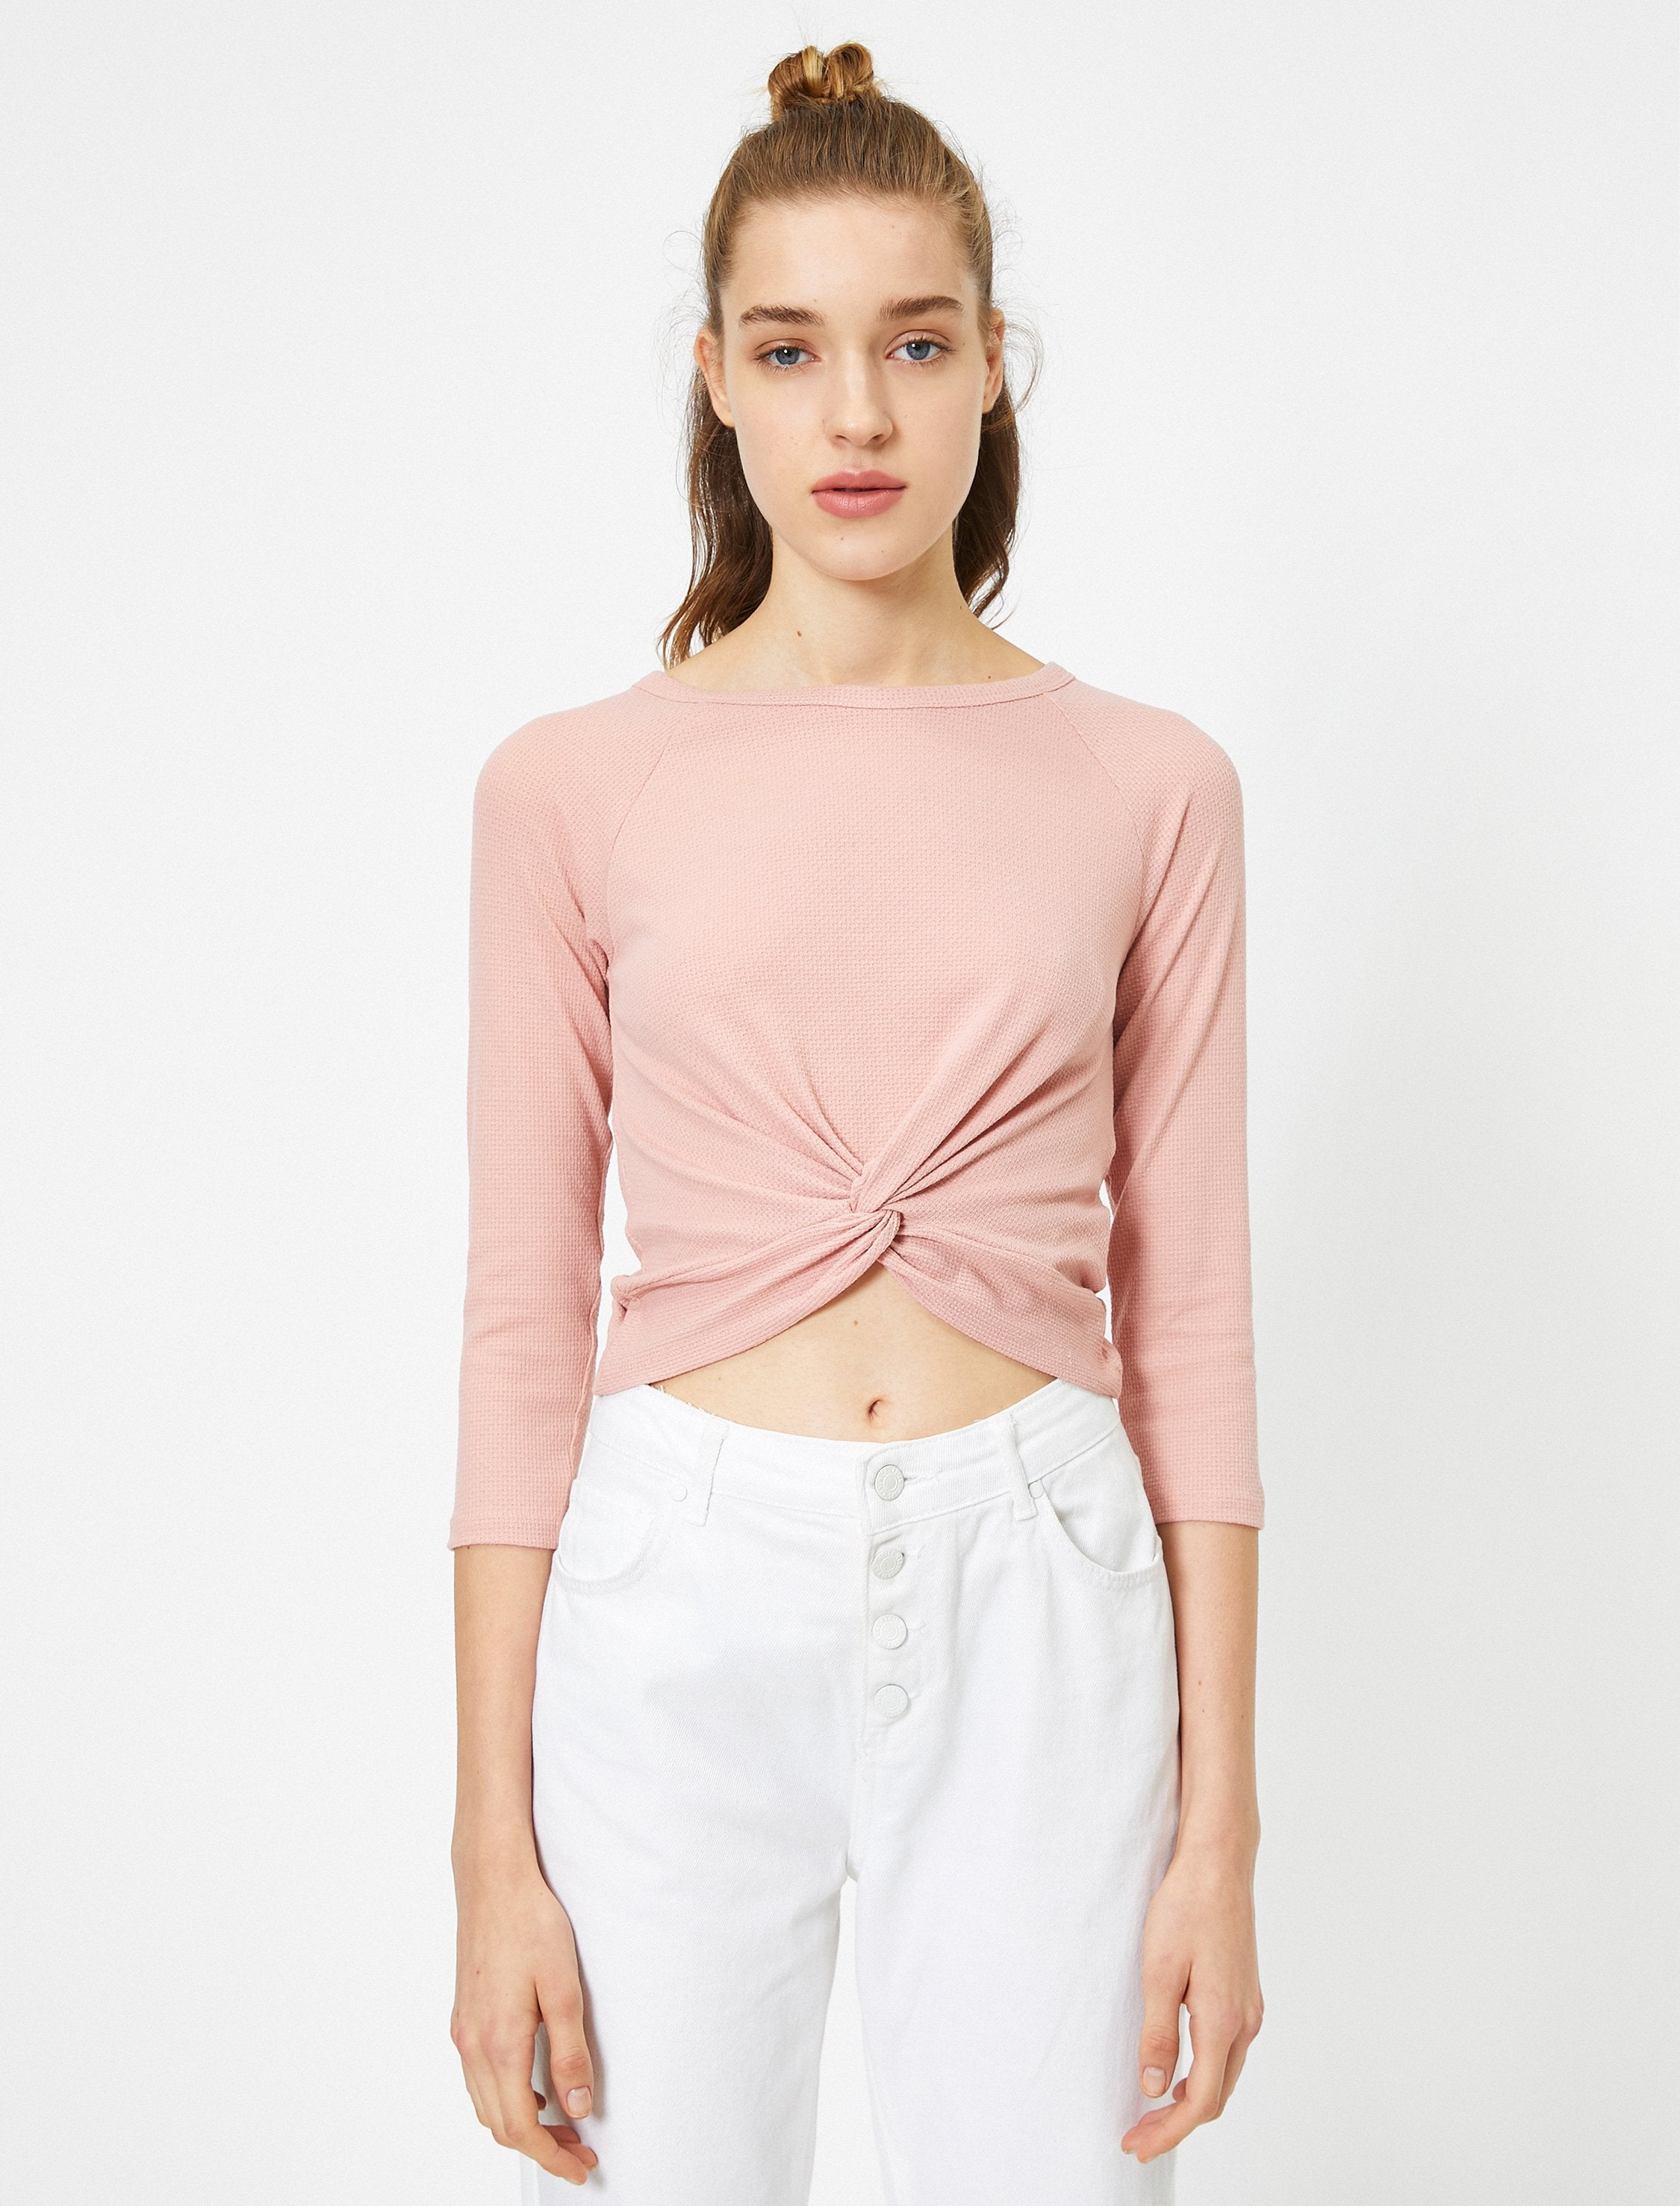 Textured Front Knot Tshirt in Pink